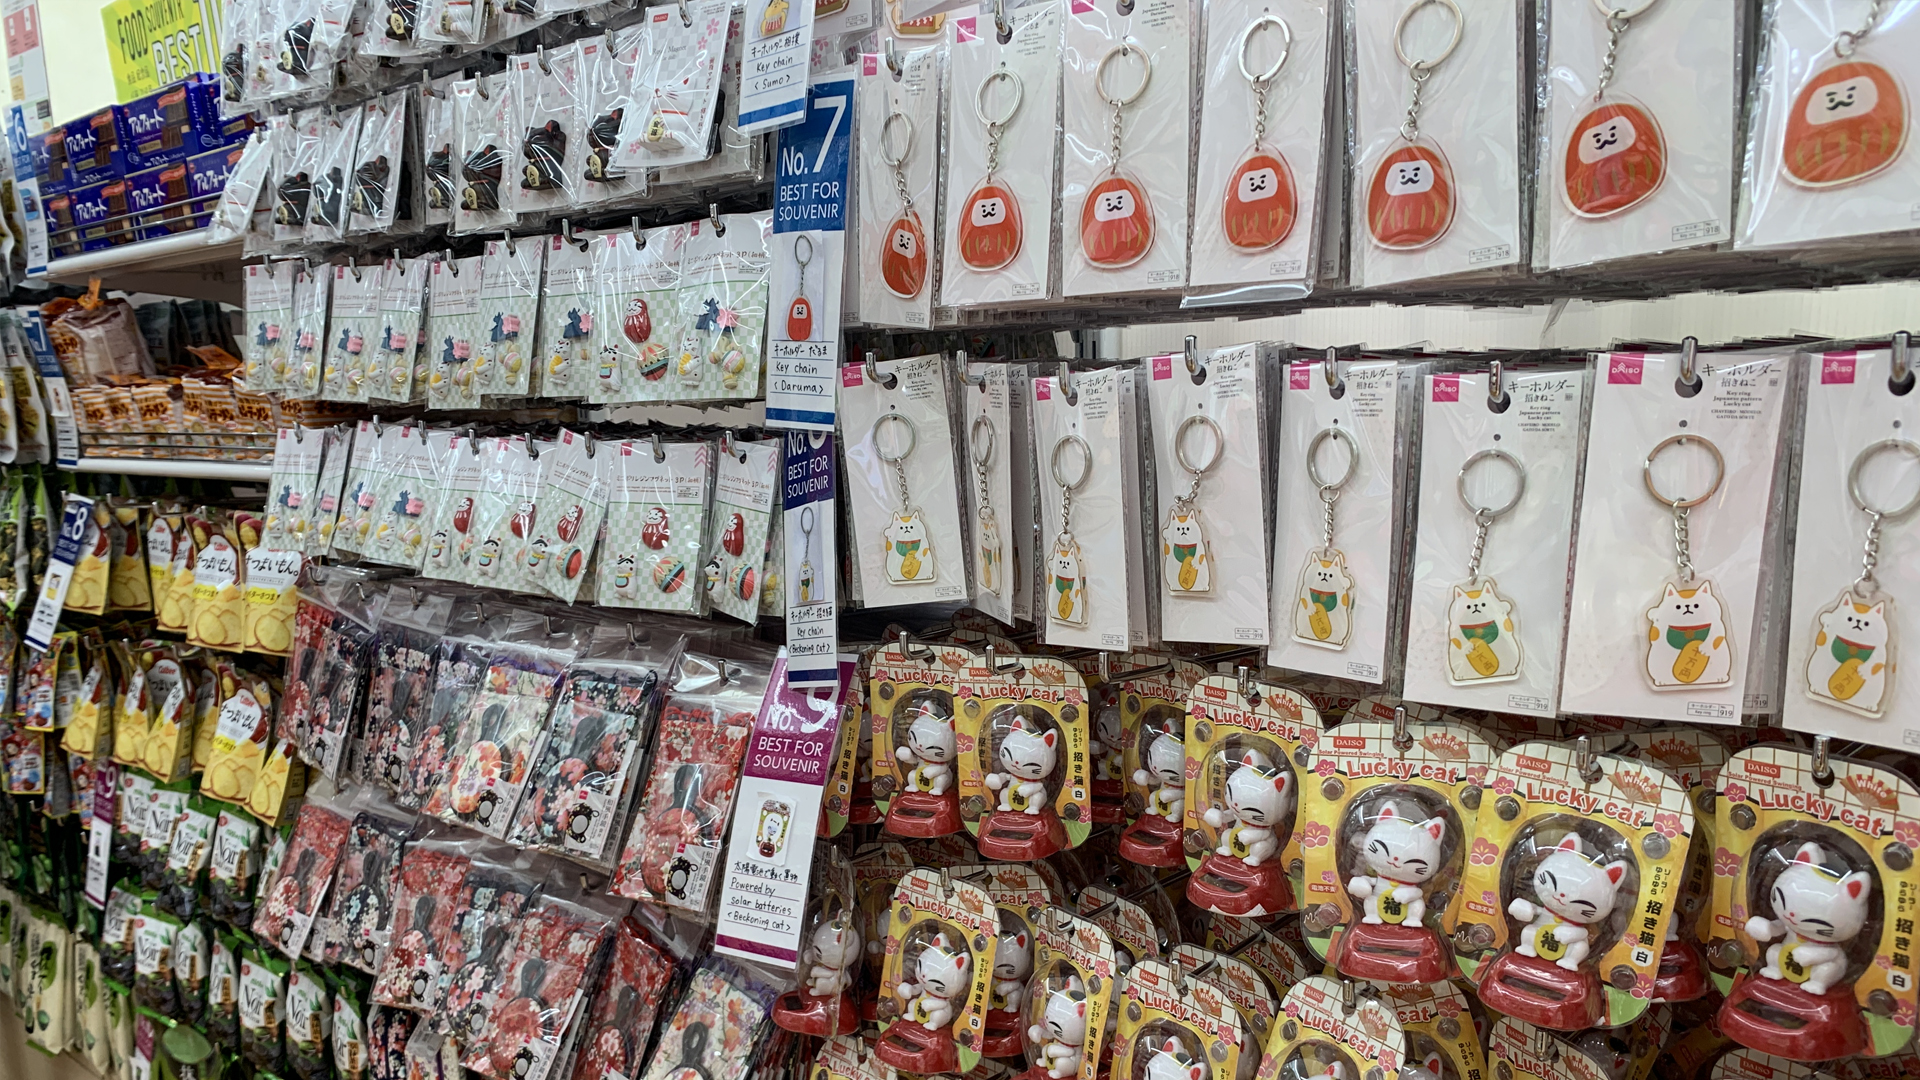 100 Yen Shop, Tips on where to go and what to buy